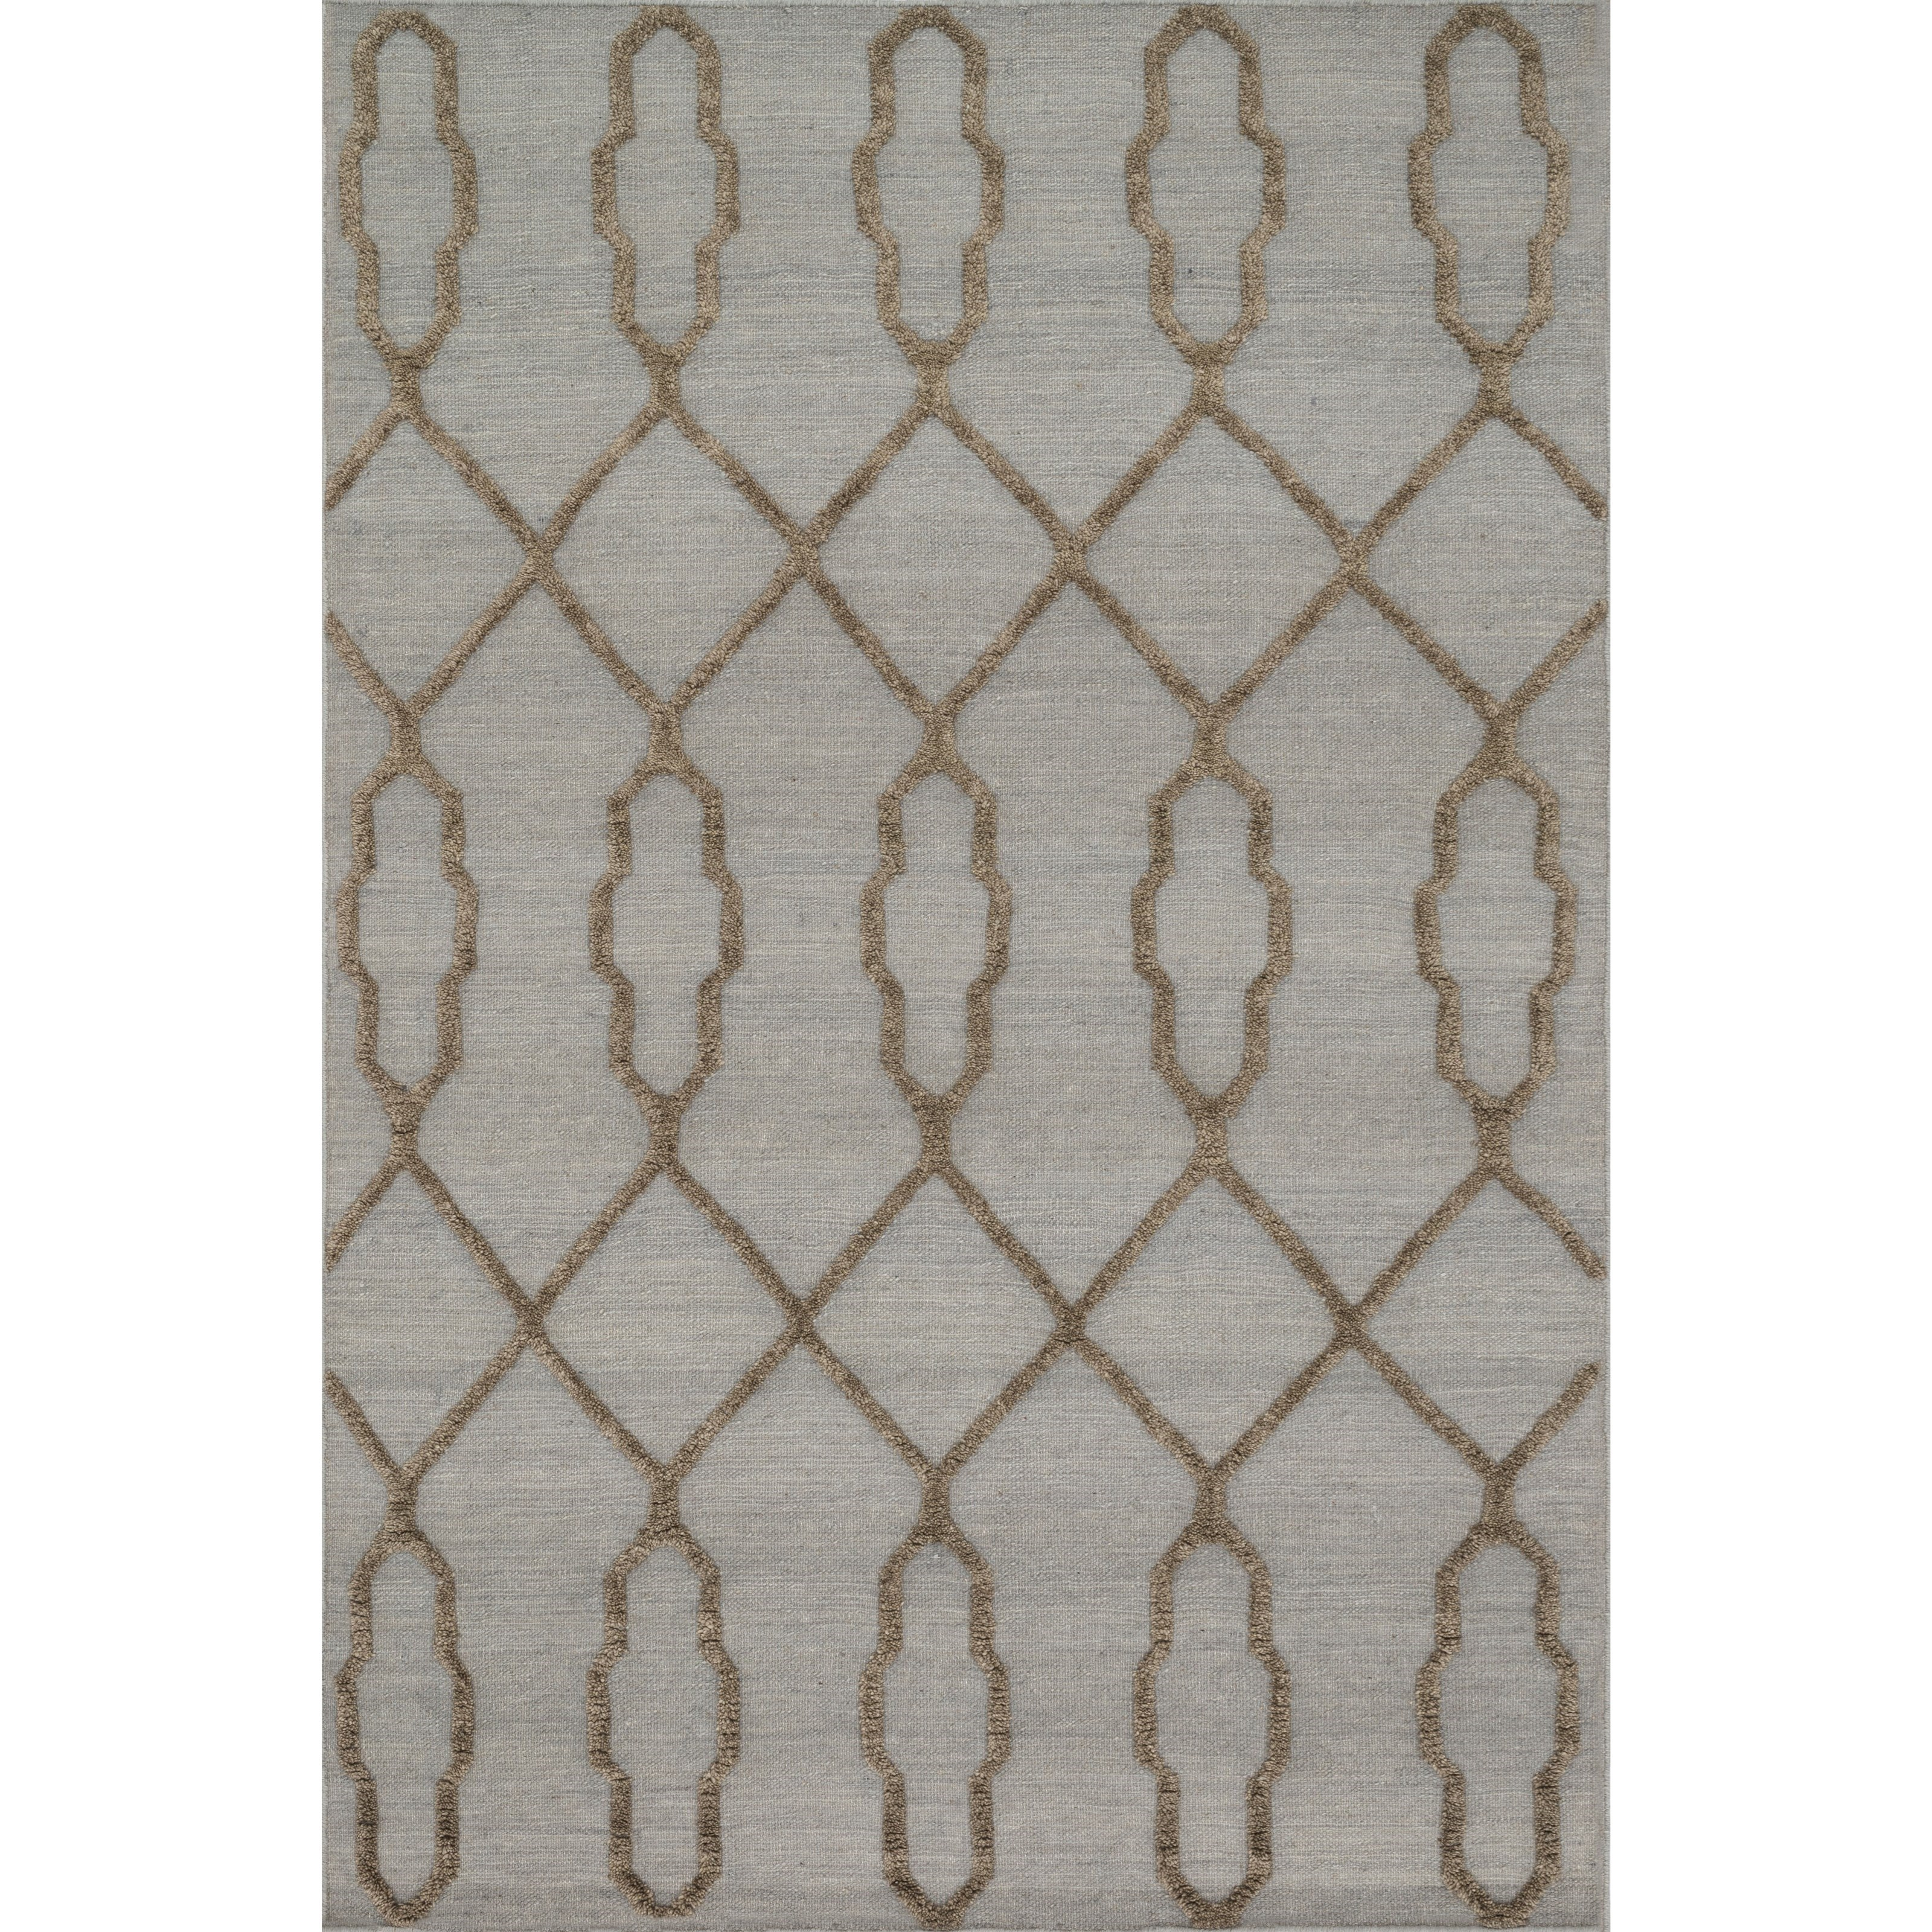 "Adler 1'6"" x 1'6""  Slate Rug by Loloi Rugs at Sprintz Furniture"